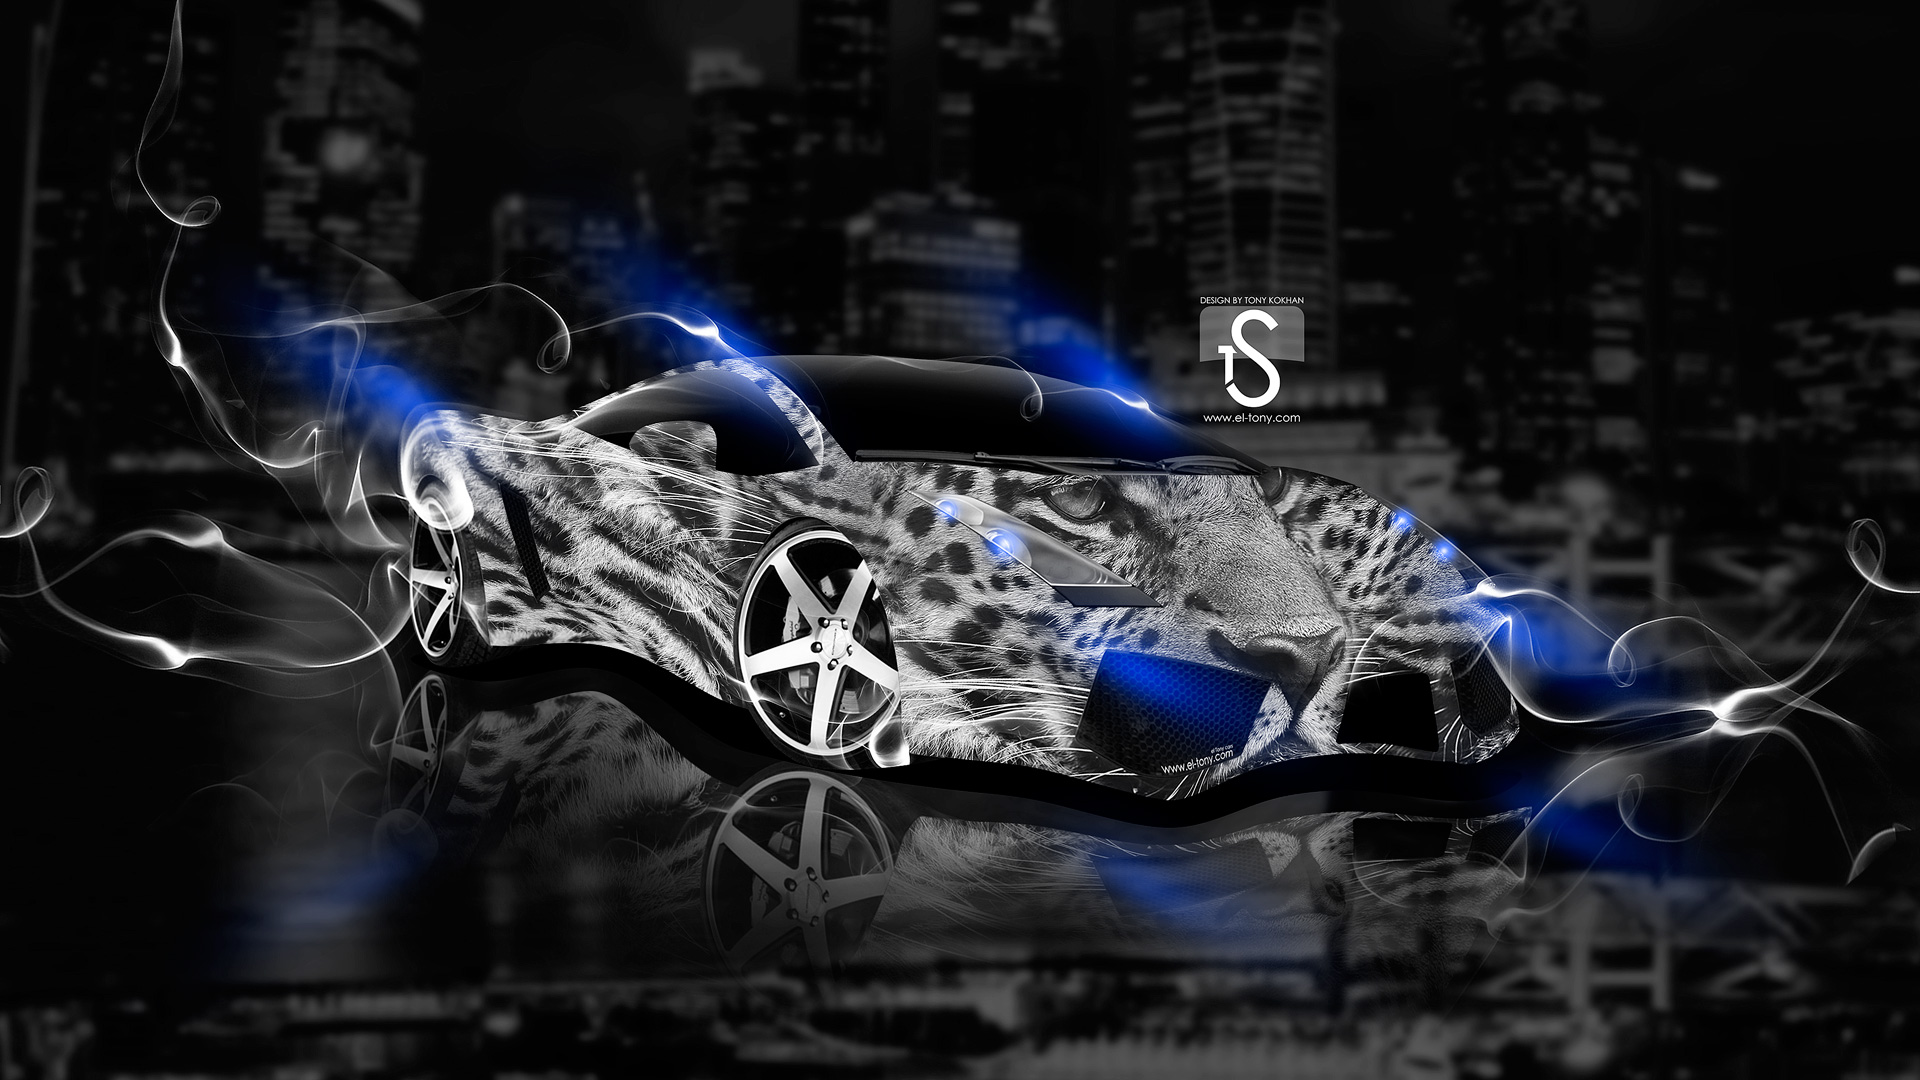 Lamborghini Gallardo Fantasy Leopard Smoke Car 2013 Blue Neon Design